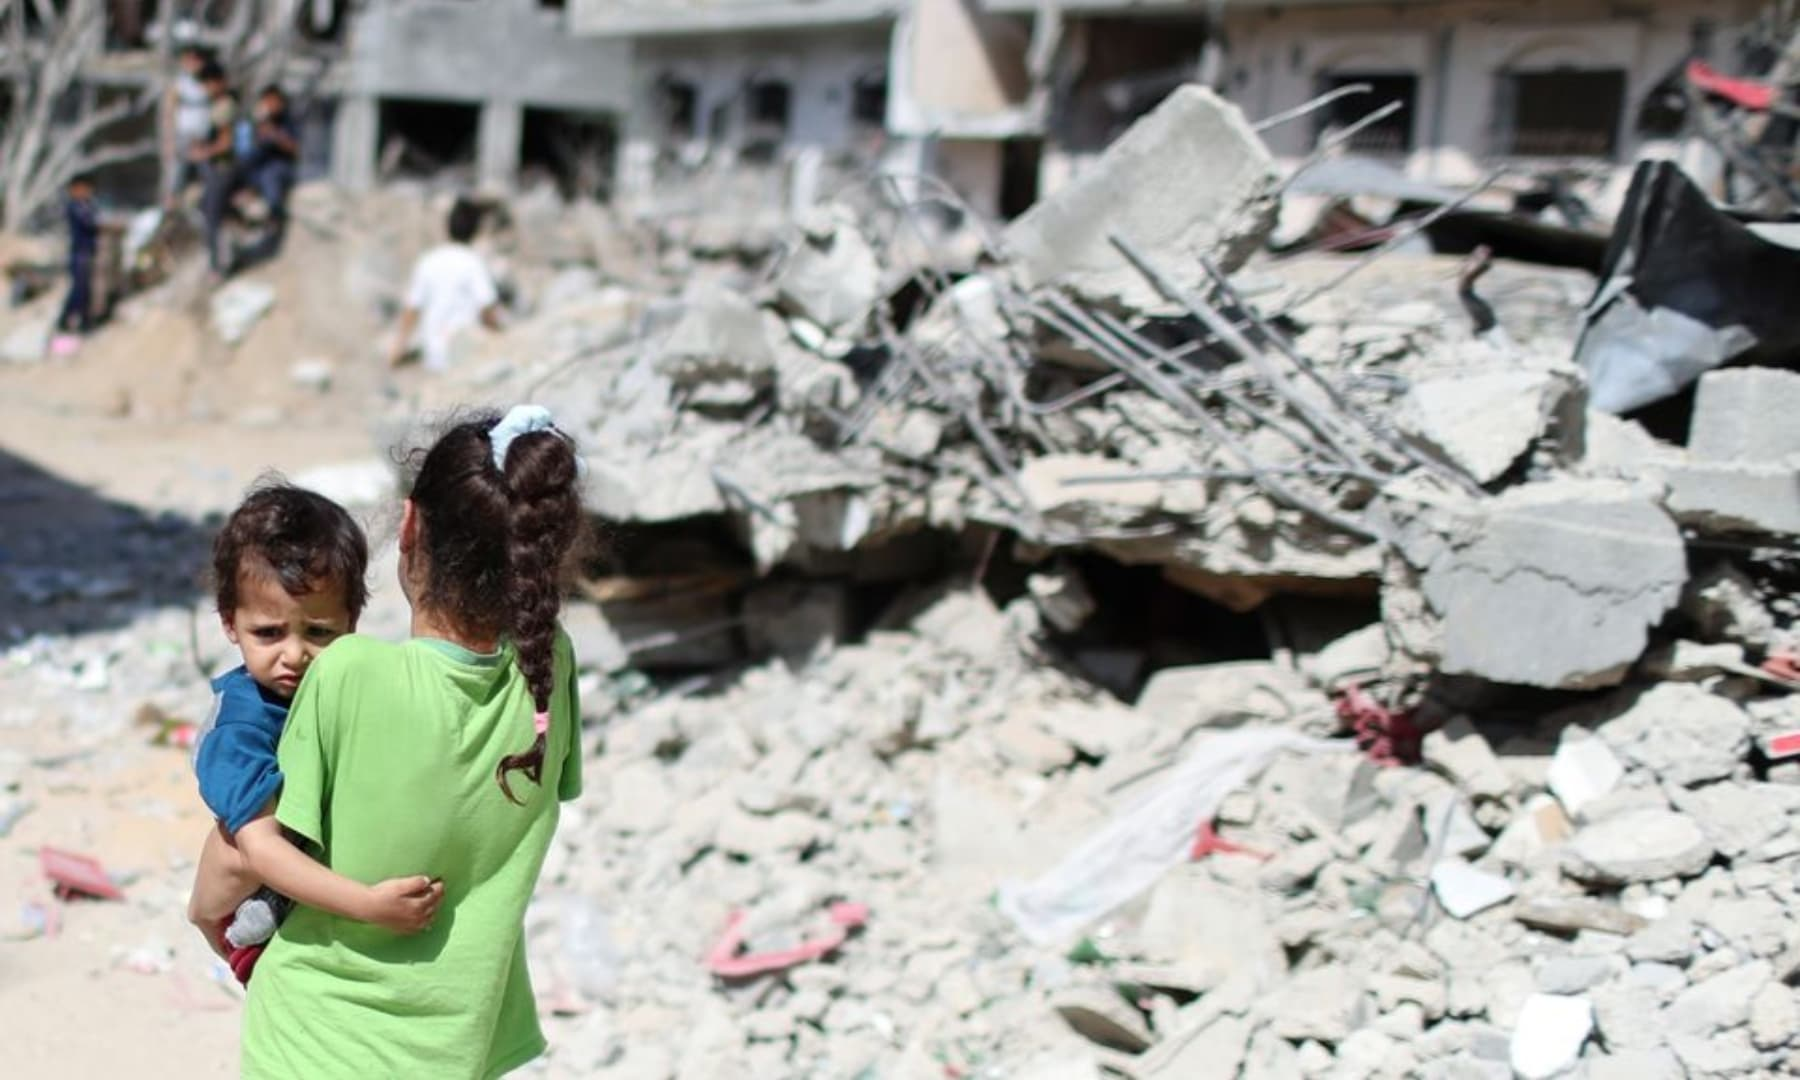 A Palestinian girl carries a boy amid the rubble of their houses which were destroyed by Israeli air strikes during the Israeli attacks on Gaza, May 23, 2021. — Reuters